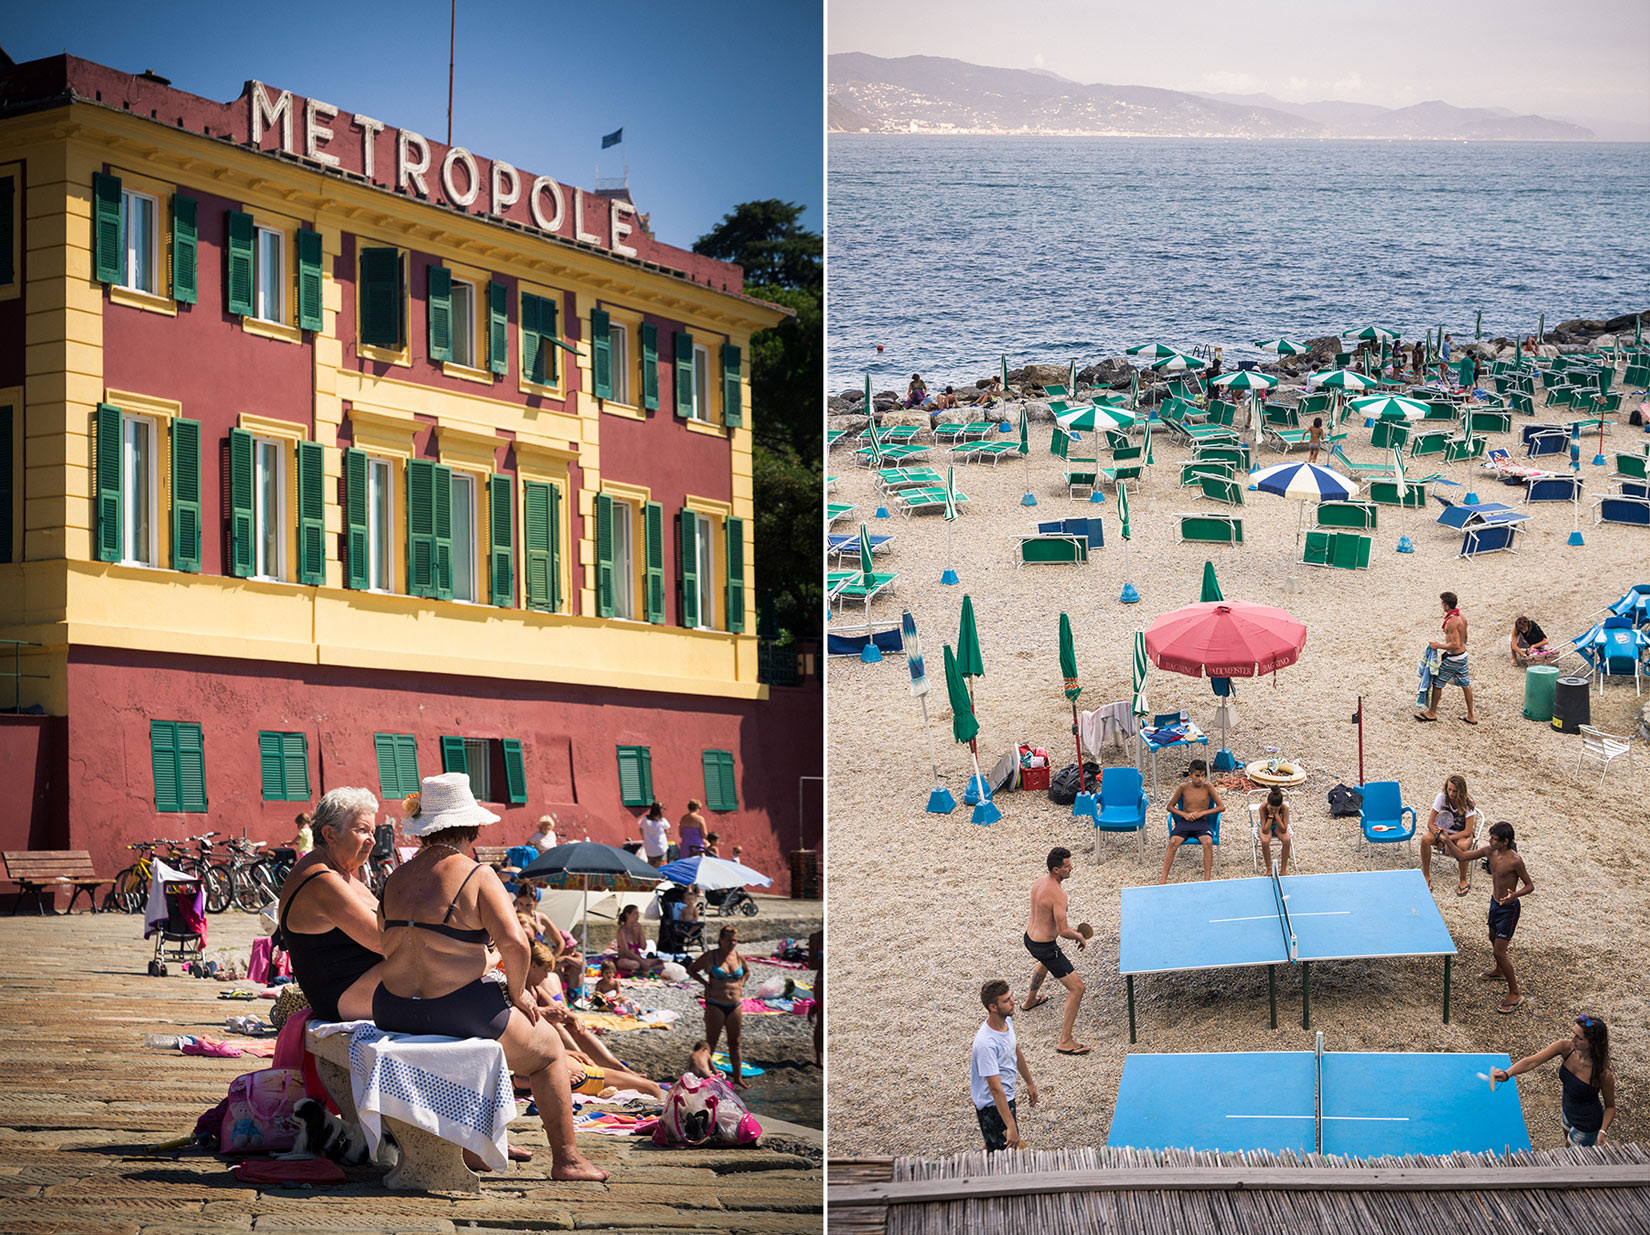 Santa Margherita Ligure. Summertime